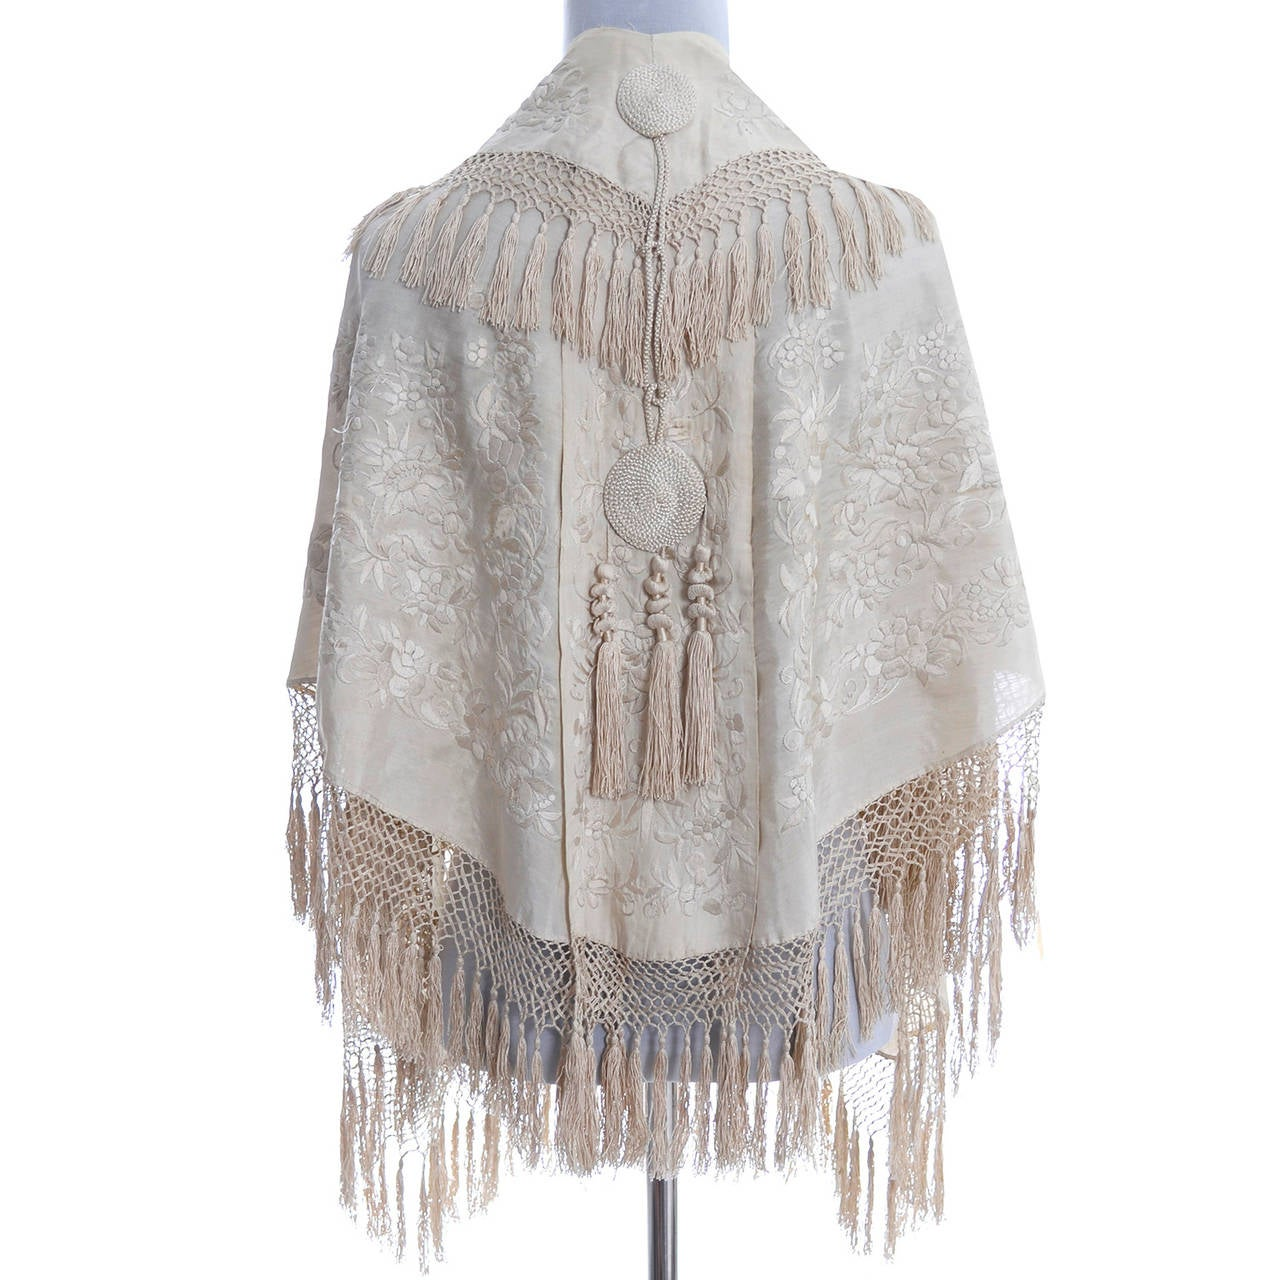 Ivory Edwardian Vintage Shawl Wrap Cape Fringe Antique Silk Embroidery Tassels 5